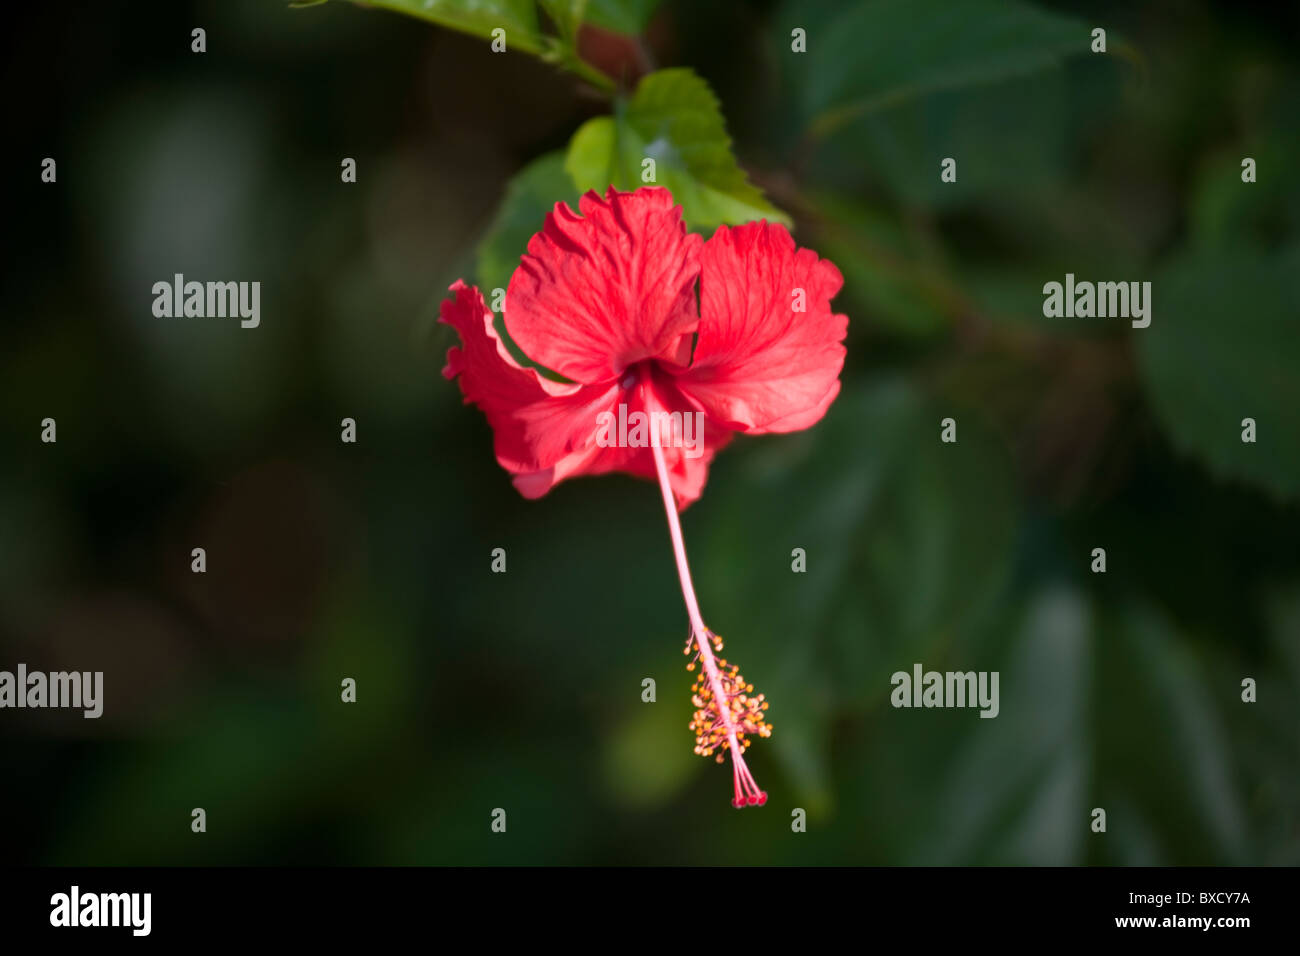 Hibiscus flower in forests of Costa Rica - Stock Image